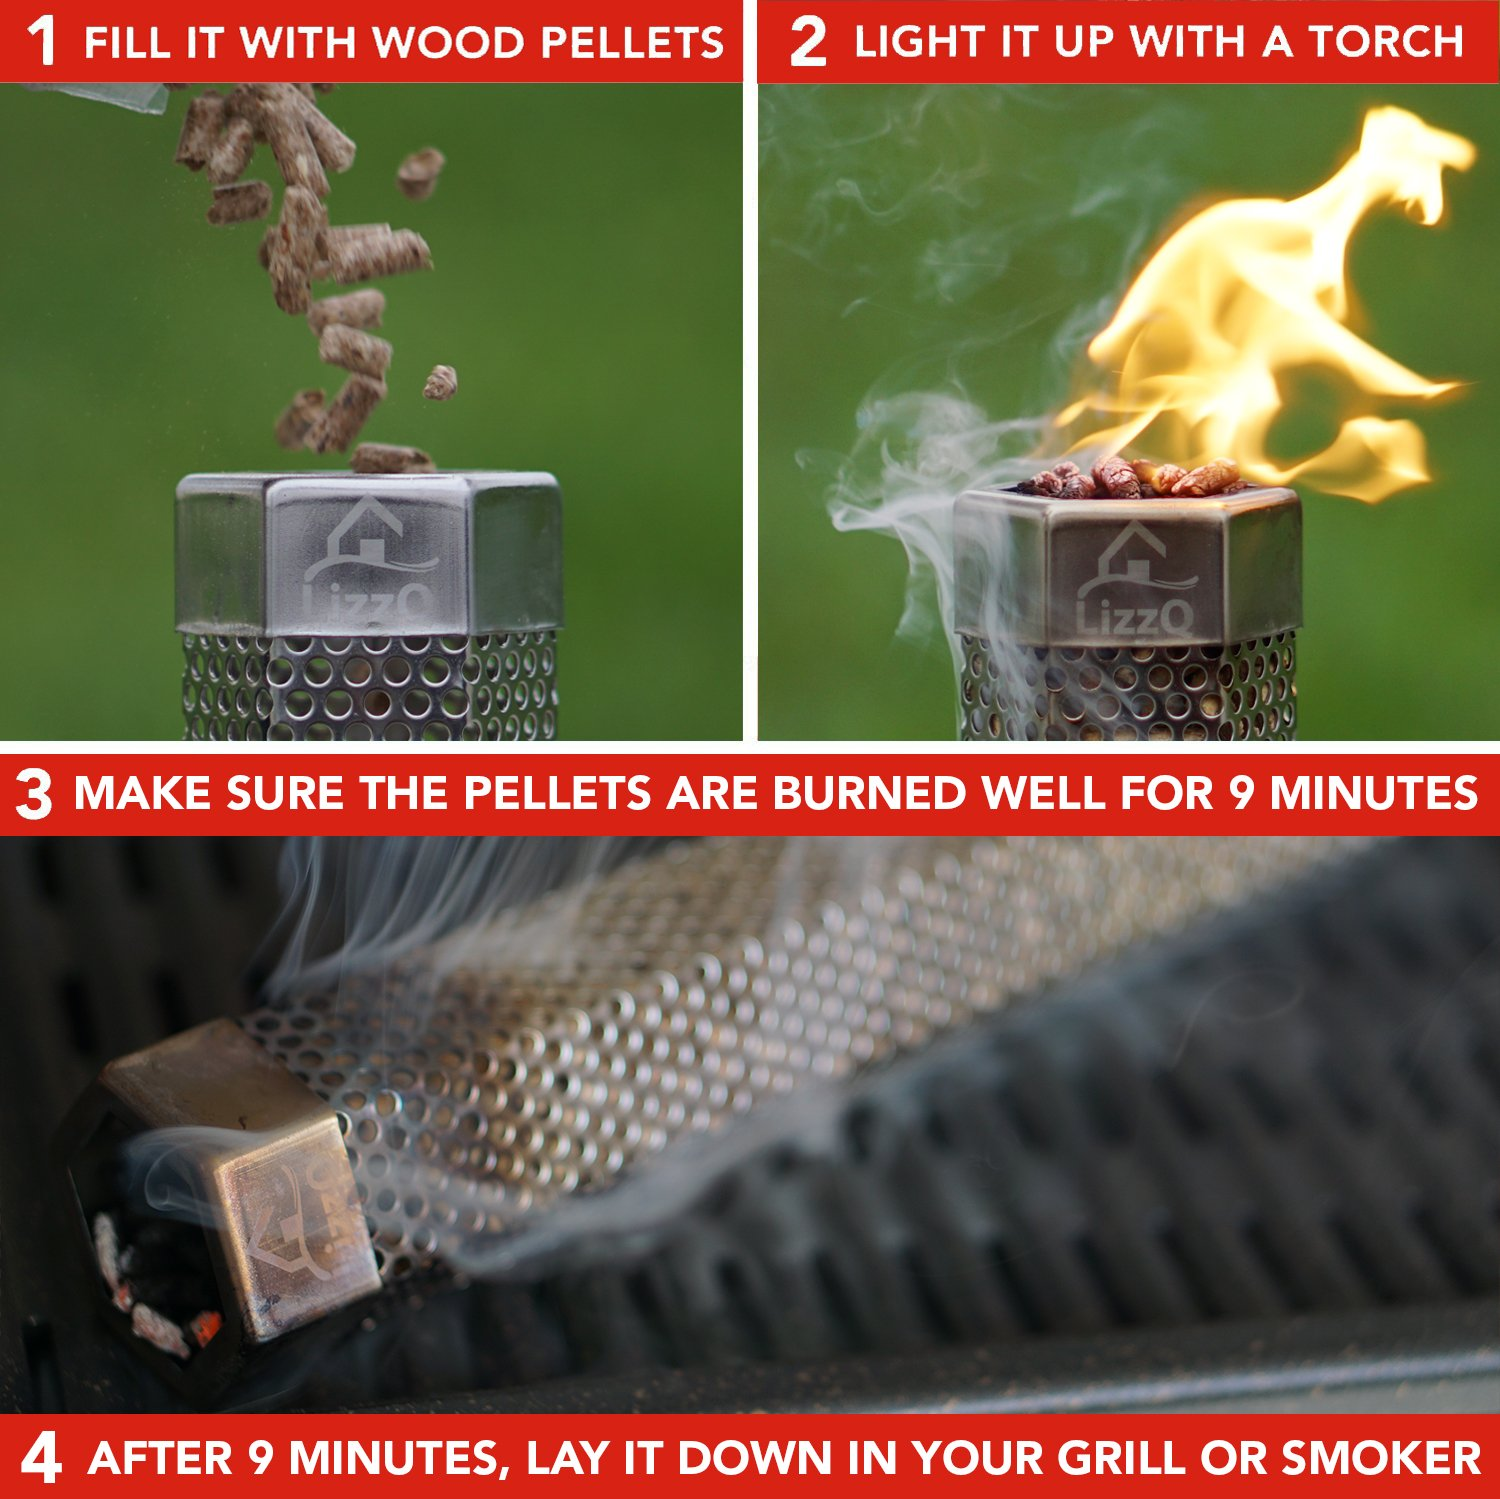 LIZZQ Premium Pellet Smoker Tube 12'' - 5 Hours Billowing Smoke any Grill Smoker, Hot Cold Smoking - Easy, safety tasty smoking - Free eBook Grilling Ideas Recipes by LIZZQ (Image #3)